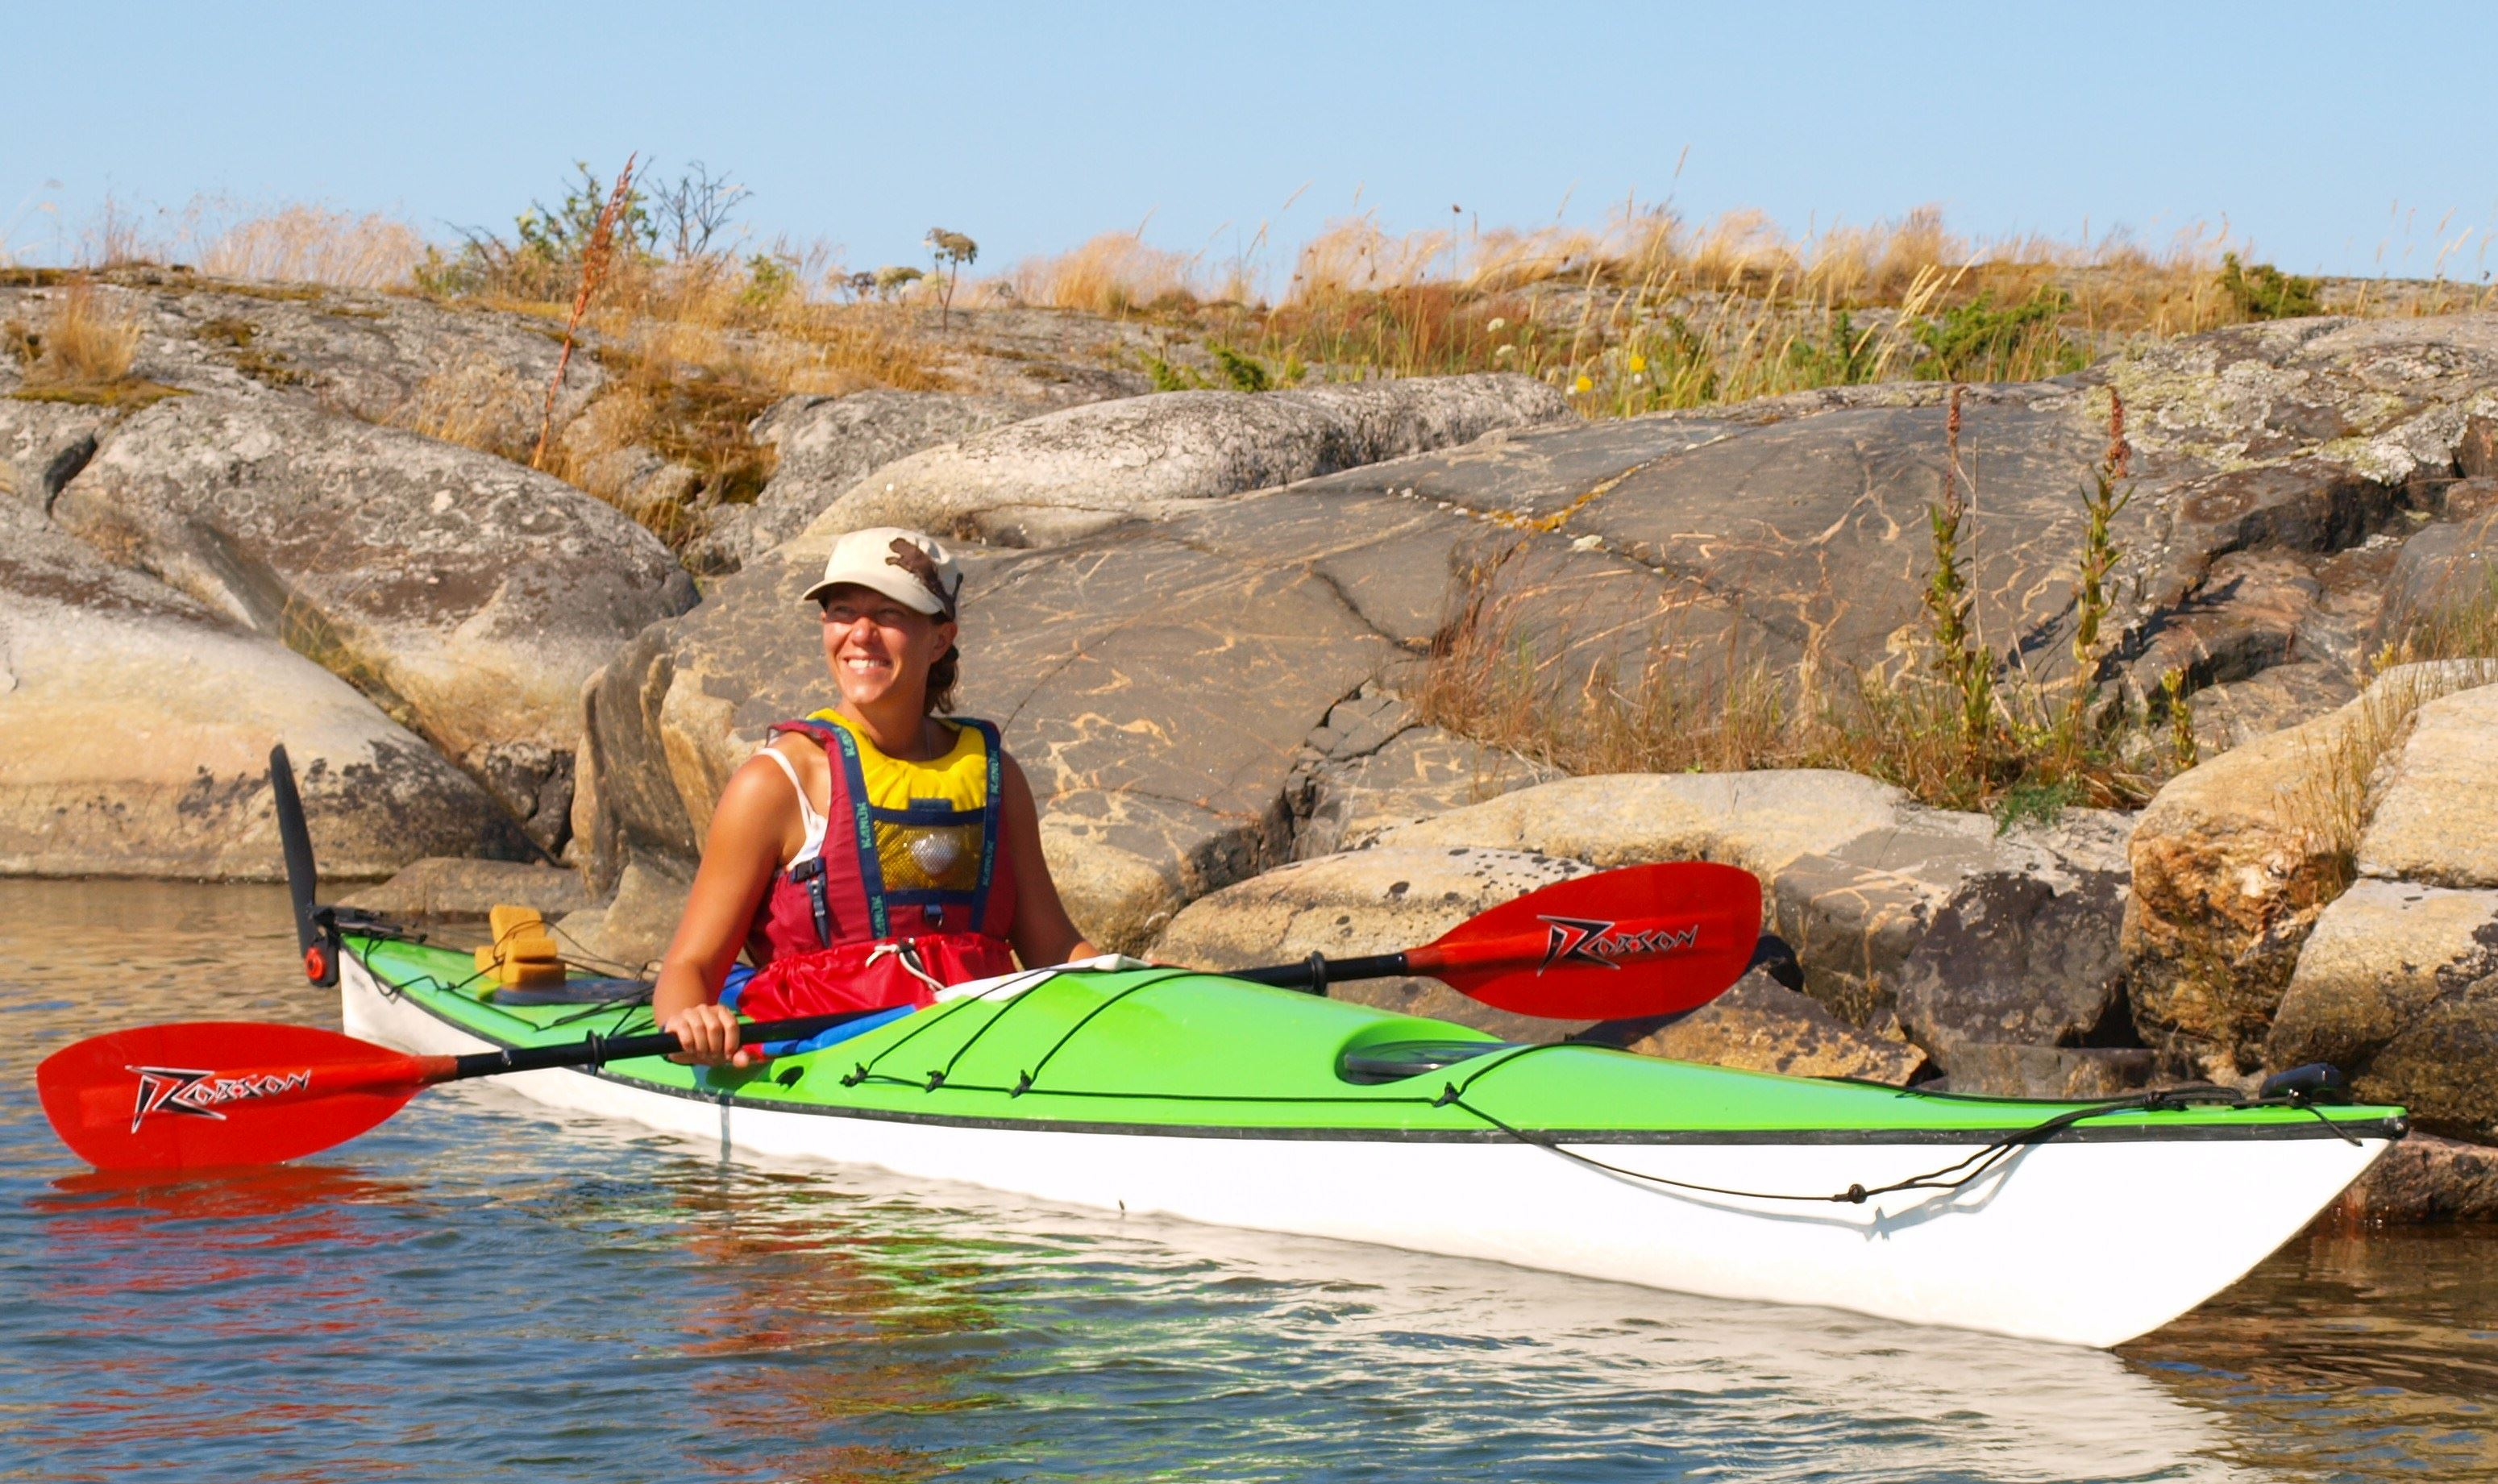 Selfguidade tour in a sea kayak